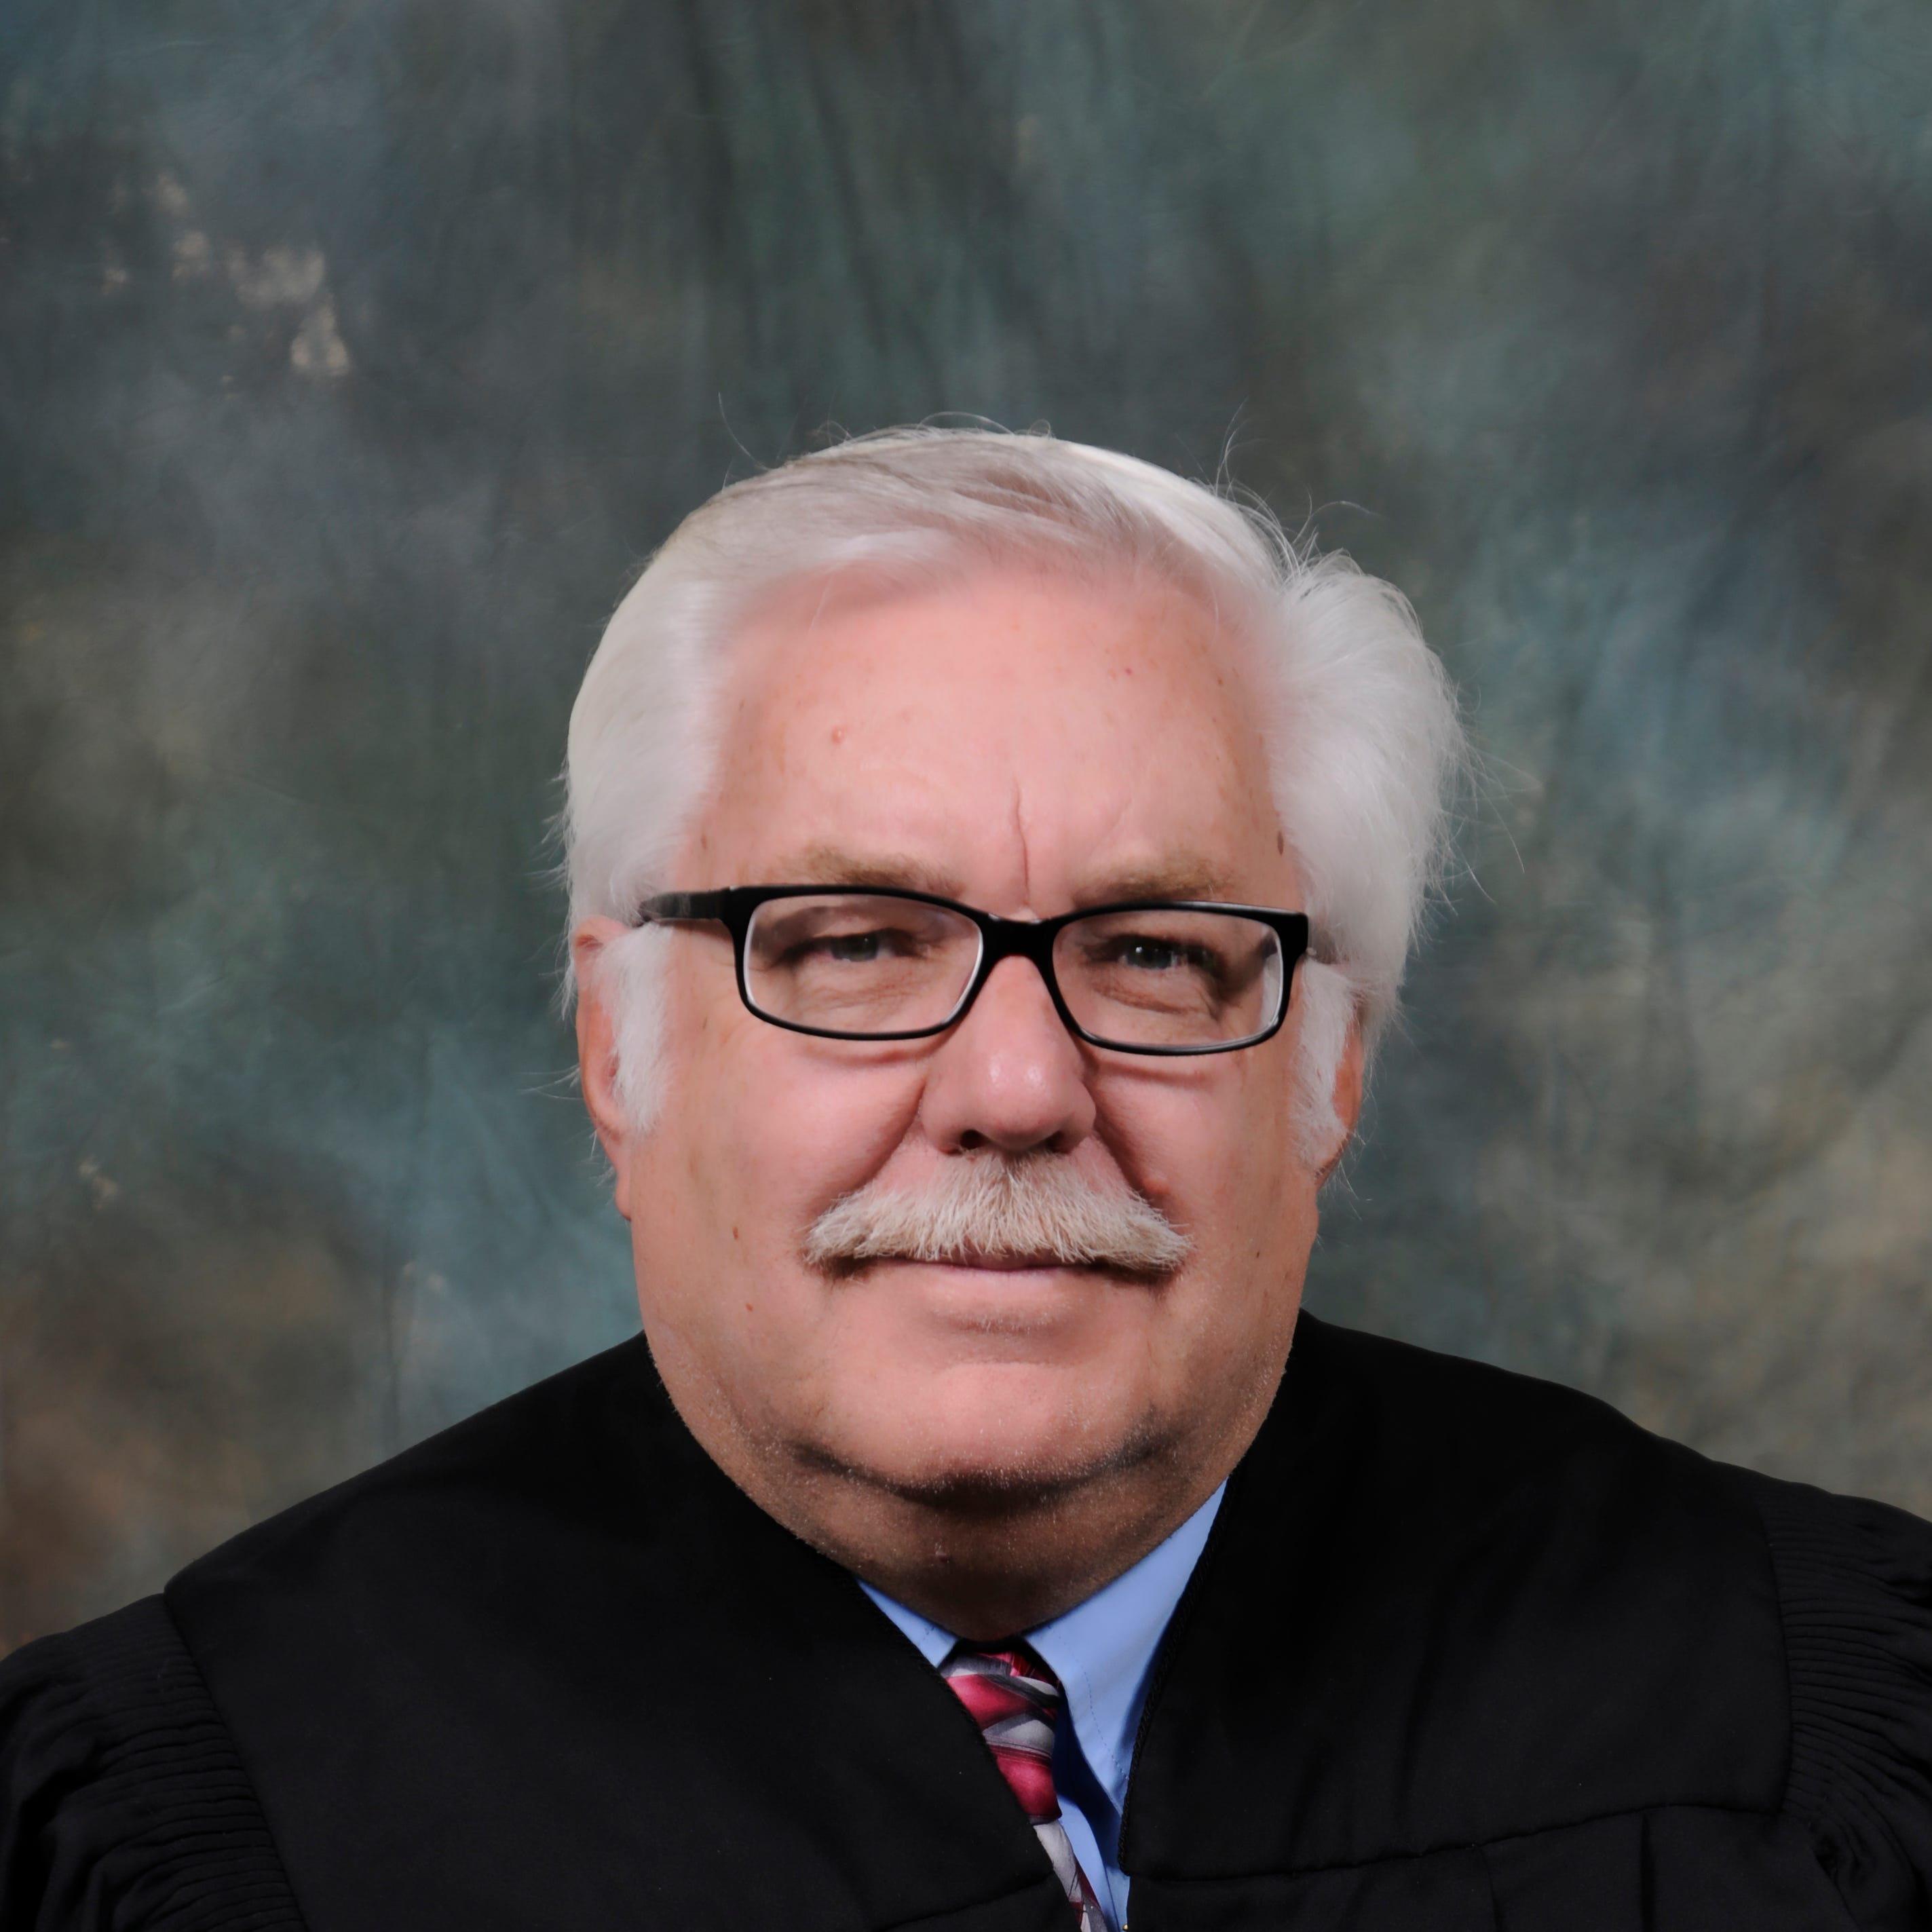 District Judge Dean set to step down from the bench